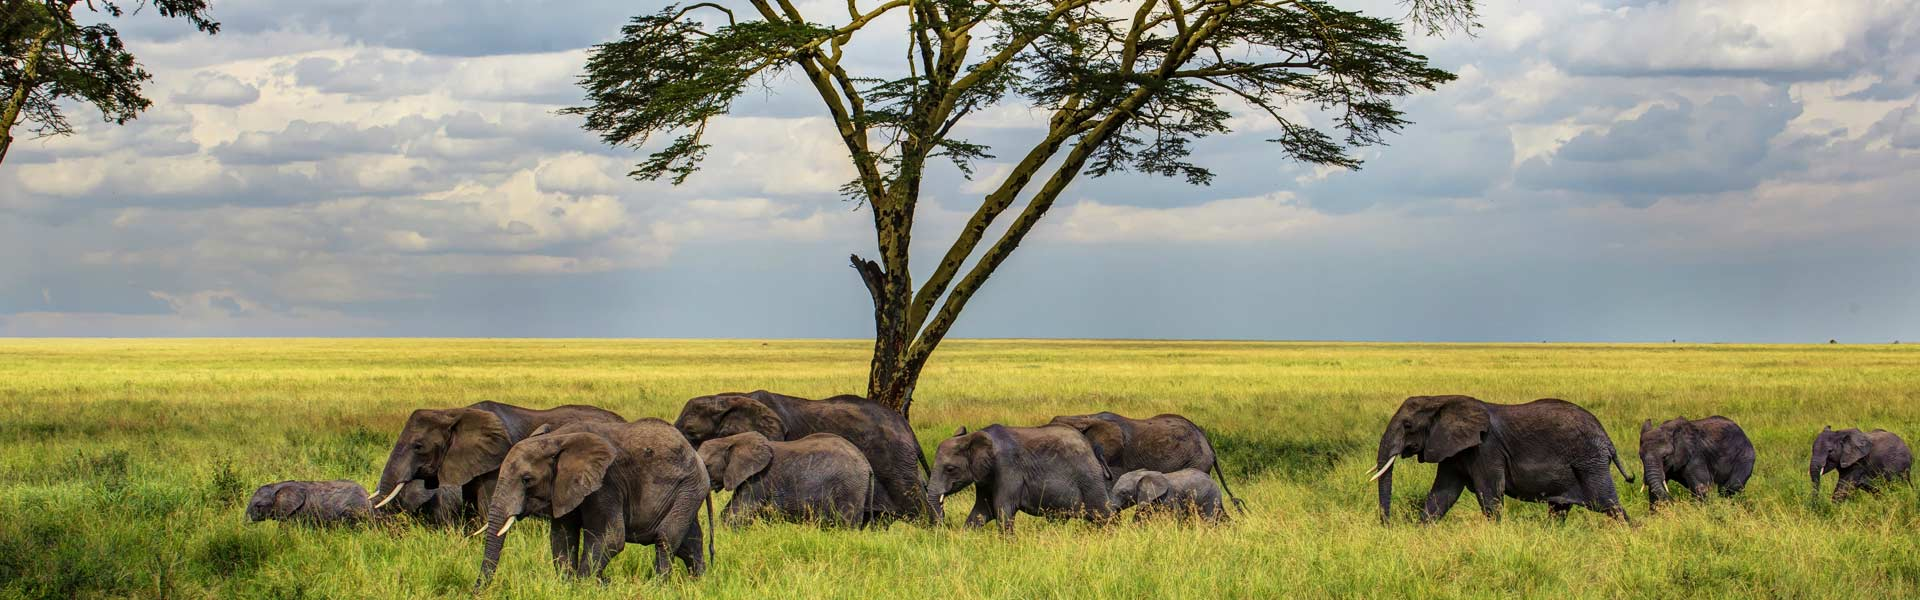 Your Dream Lifetime Safaris Starts Here